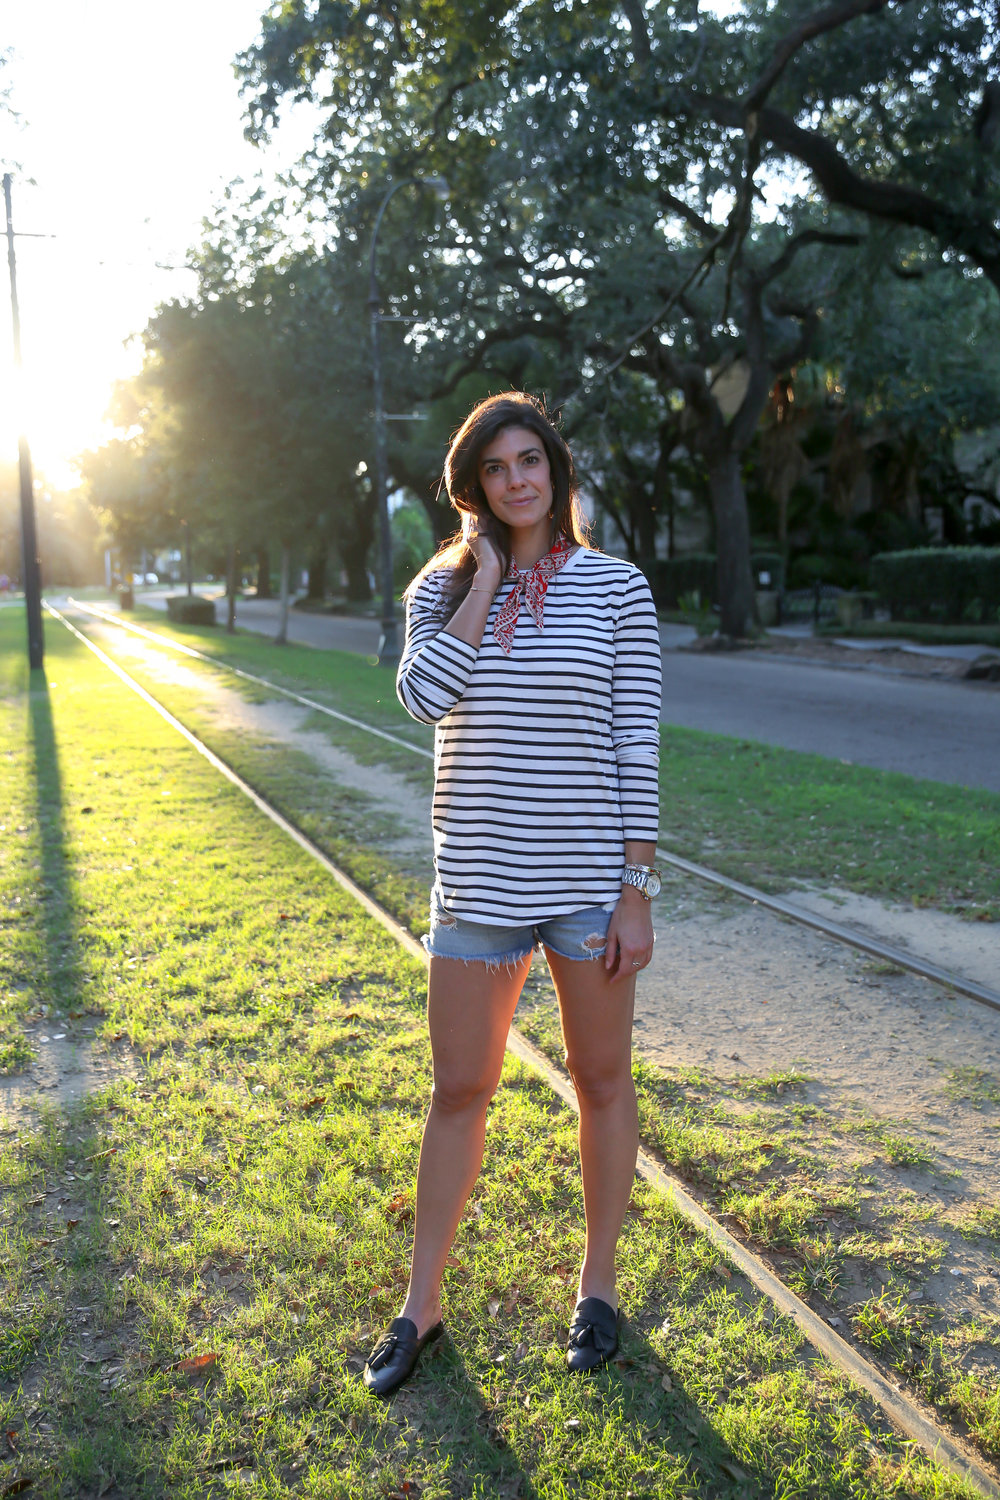 shorts-long-sleeve-stripes-mules-fall-style-lauren-schwaiger.jpg